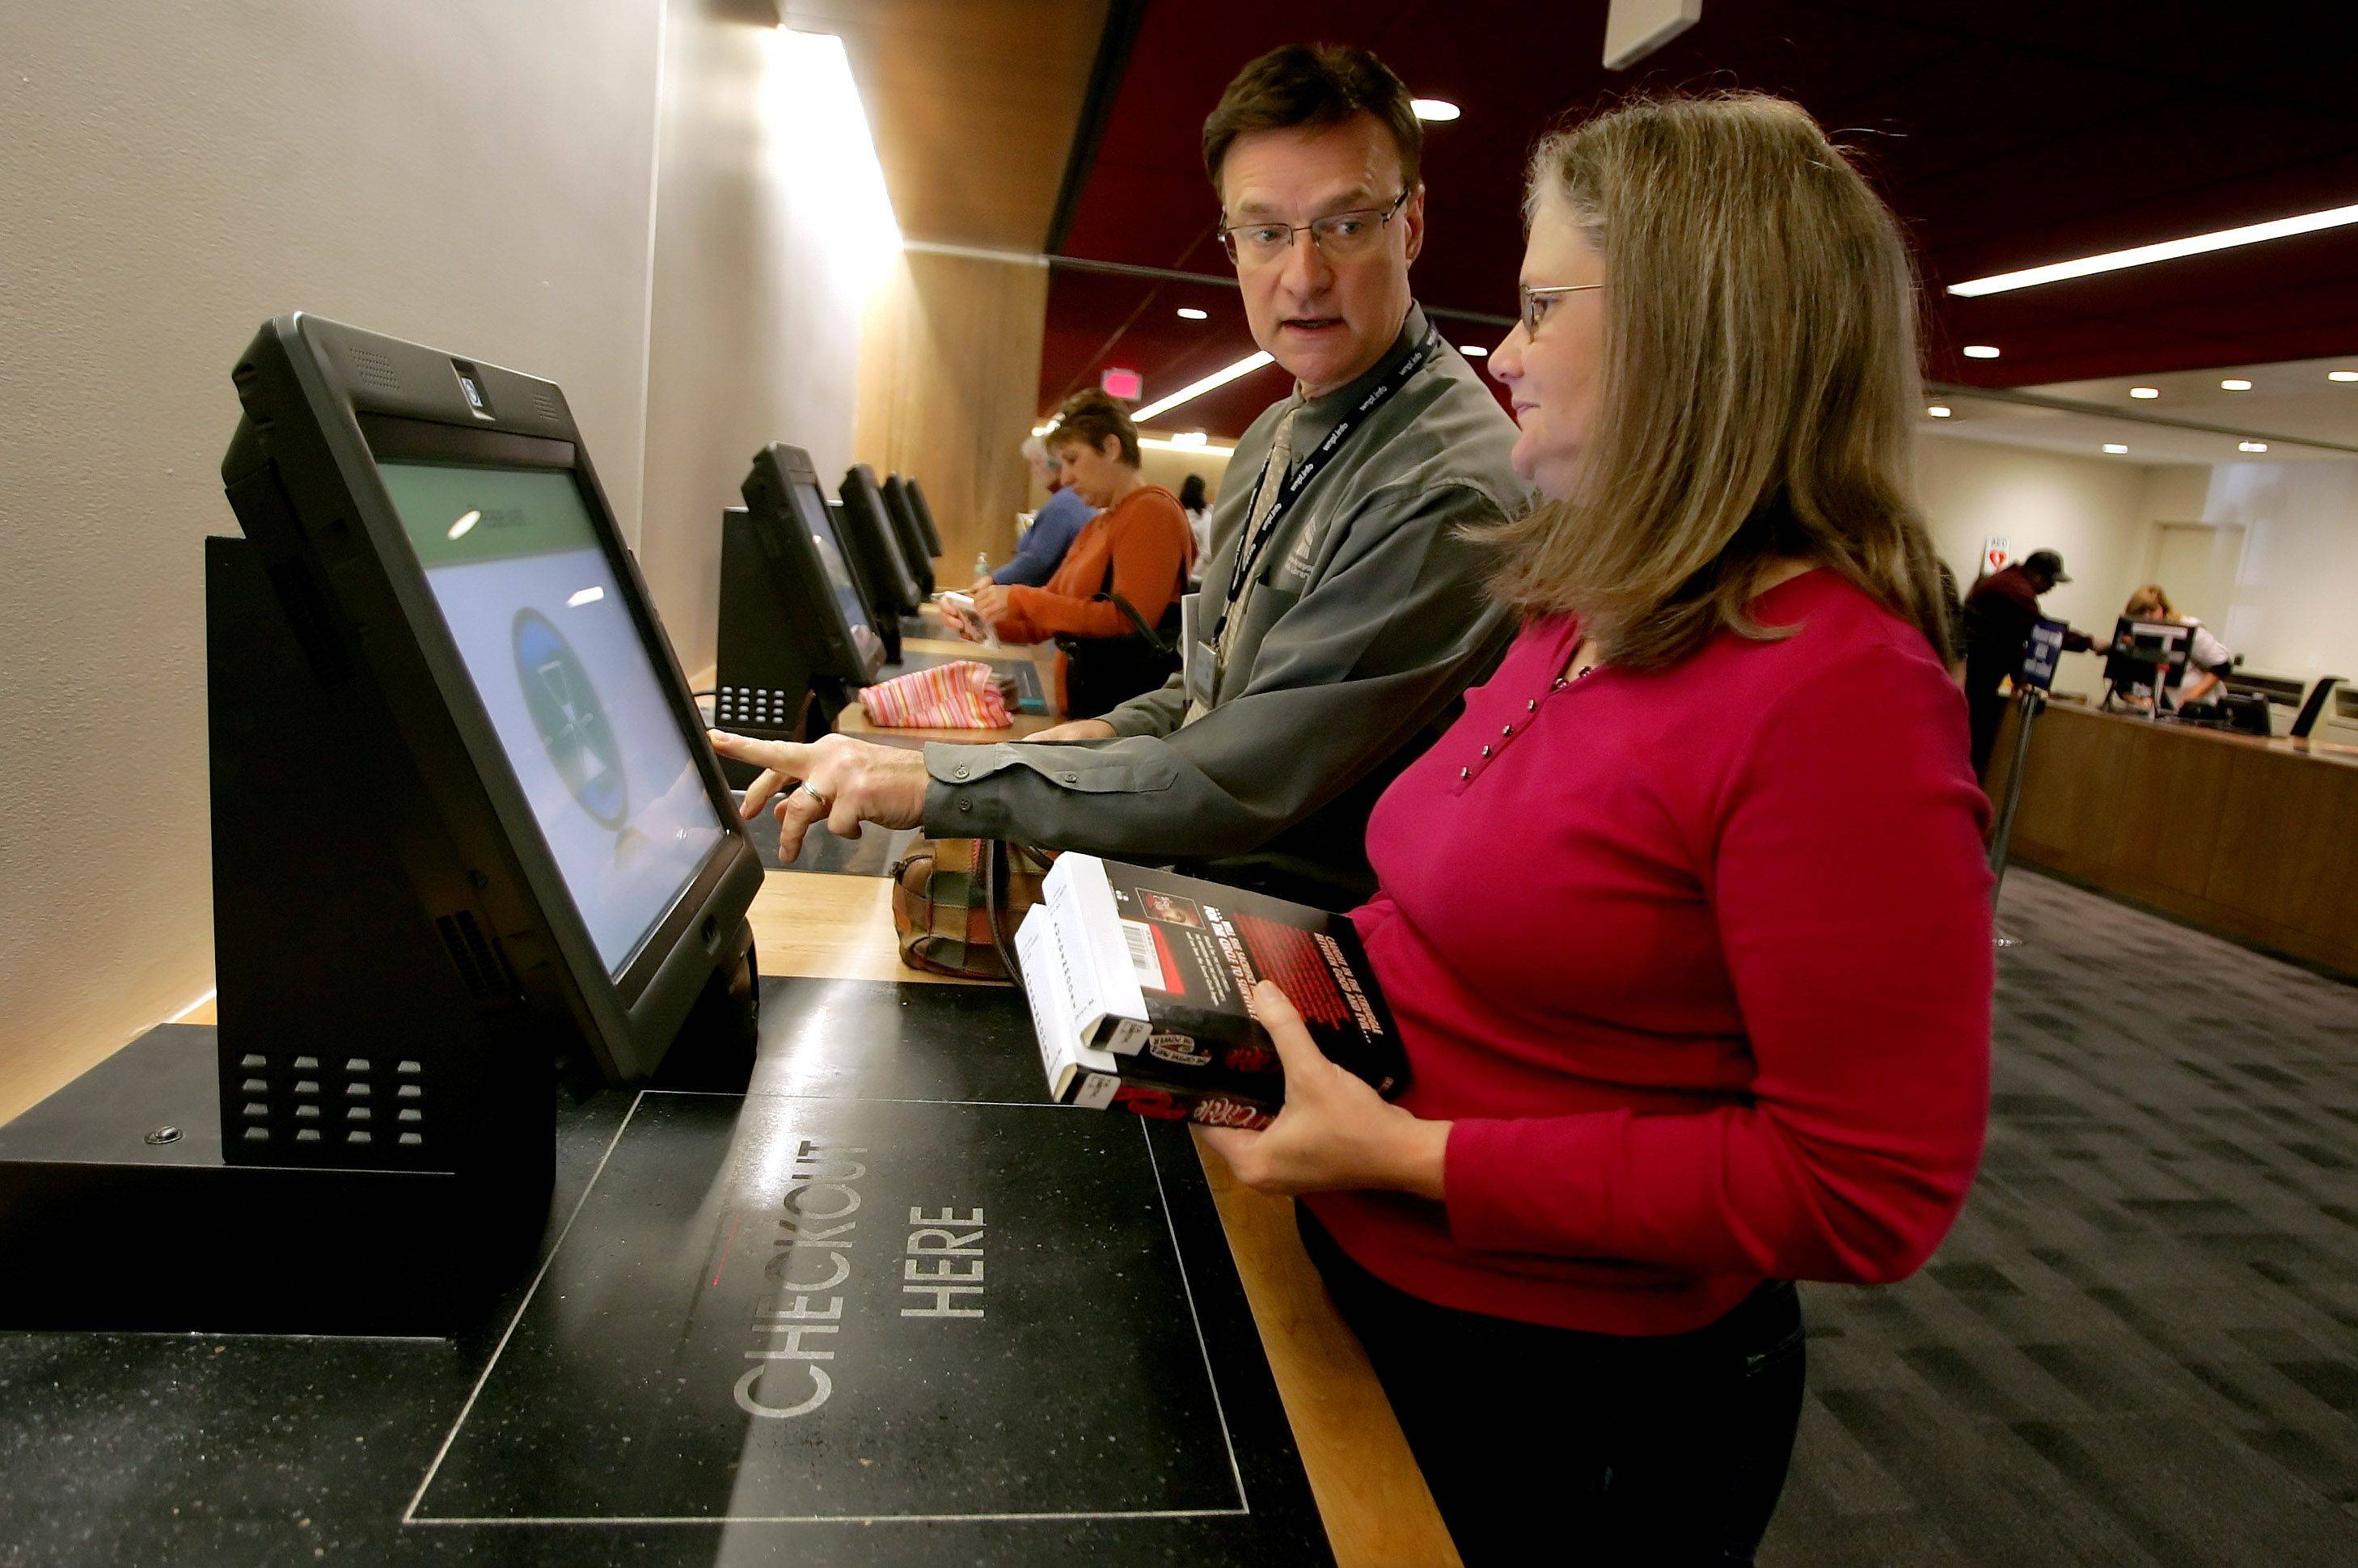 Warren-Newport Public Library Director Stephen Bero, center, helps Kate Ausdenmoore of Gurnee with the new XpressCheck checkout system Monday on the first day of library's reopening in Gurnee. The library has been closed since Sept. 12 due to construction additions and remodeling.